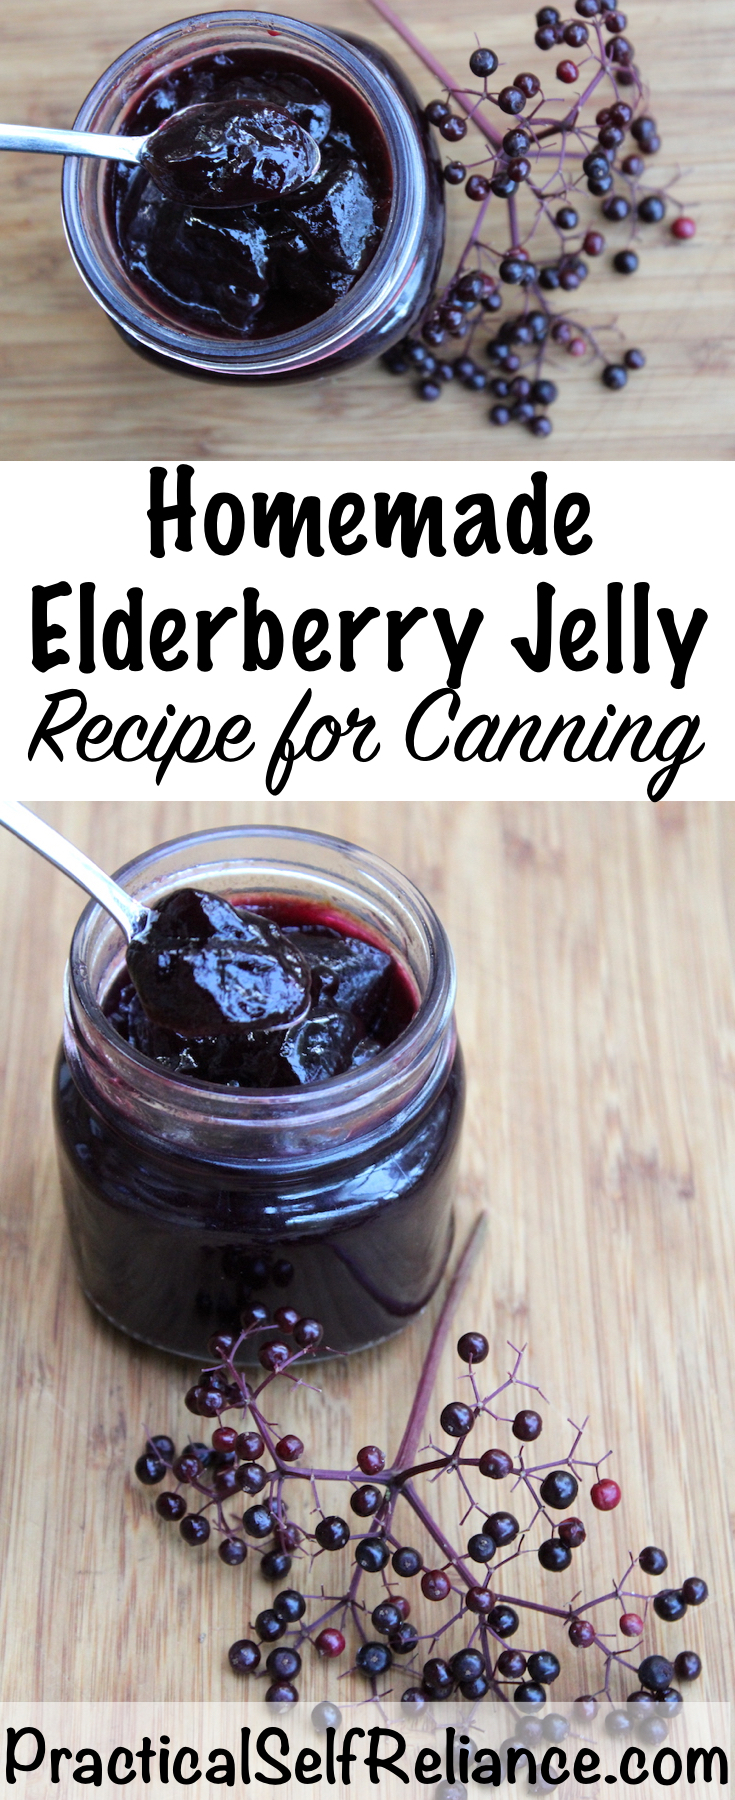 Elderberry Jelly Recipe for Canning